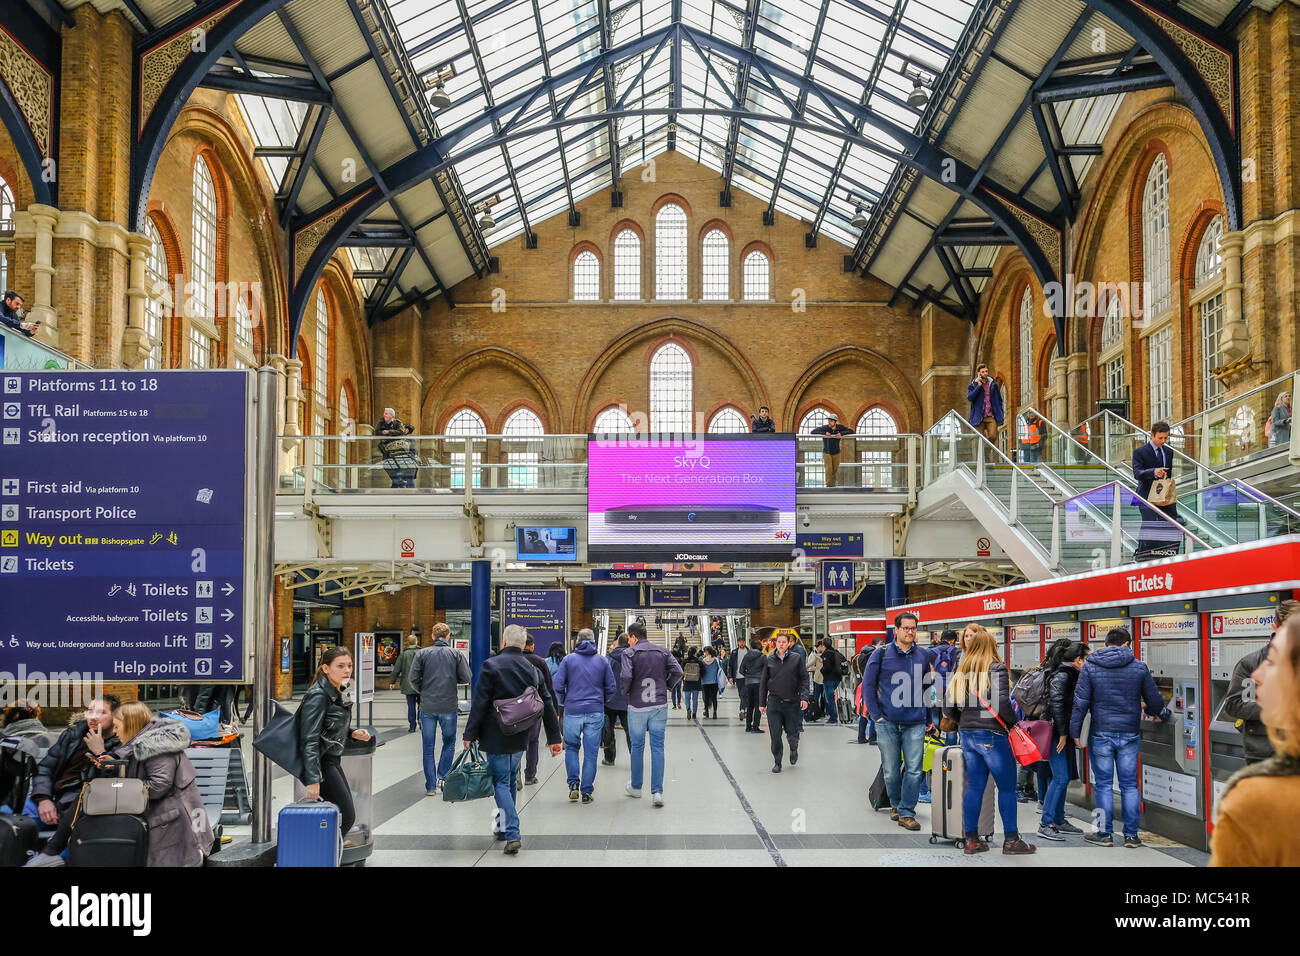 Liverpool Street, London, UK - April 6, 2018: Wide angle shot of mainline station with lots of passengers. - Stock Image